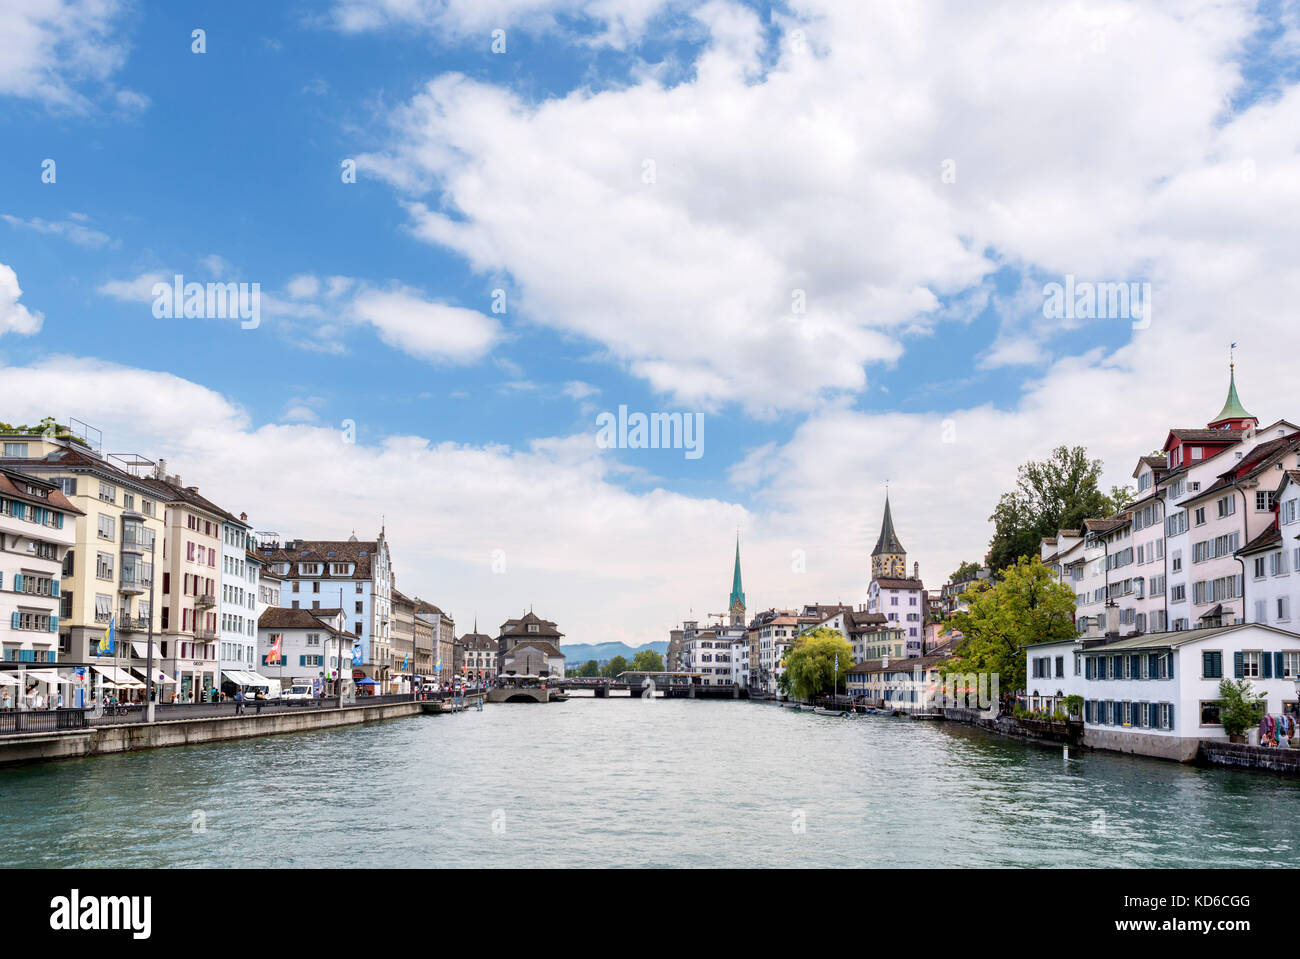 View of the old town and River Limmat from the Rudolf-Brun-Brücke, Zürich, Lake Zurich, Switzerland - Stock Image